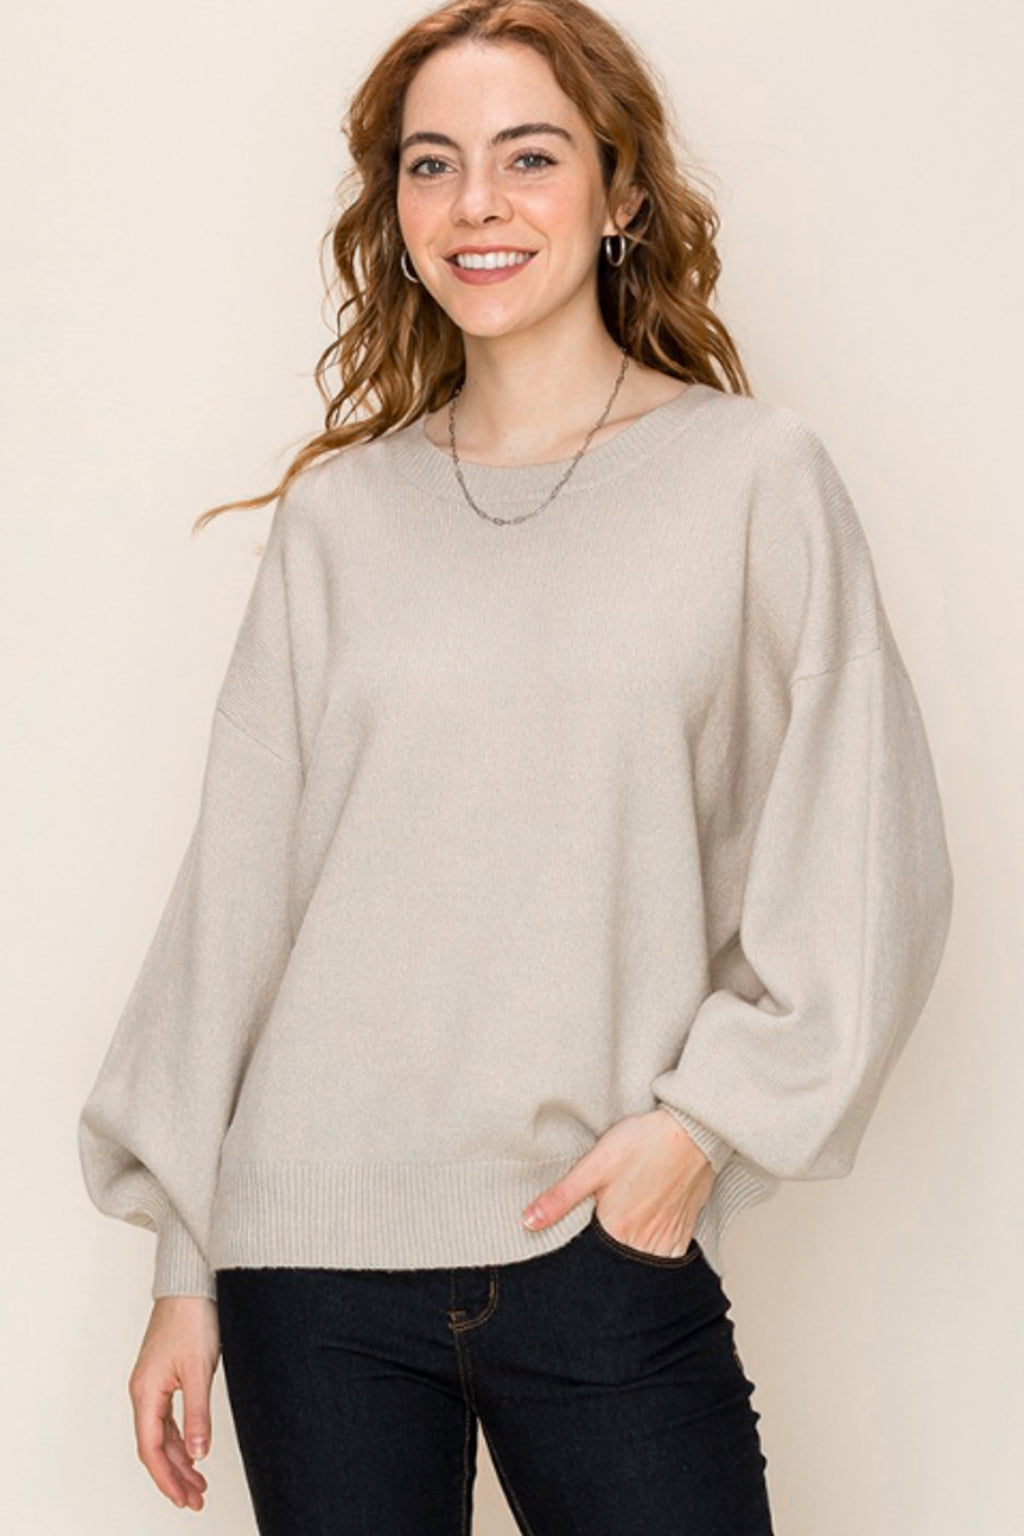 Ellie Crew Neck Knit Sweater